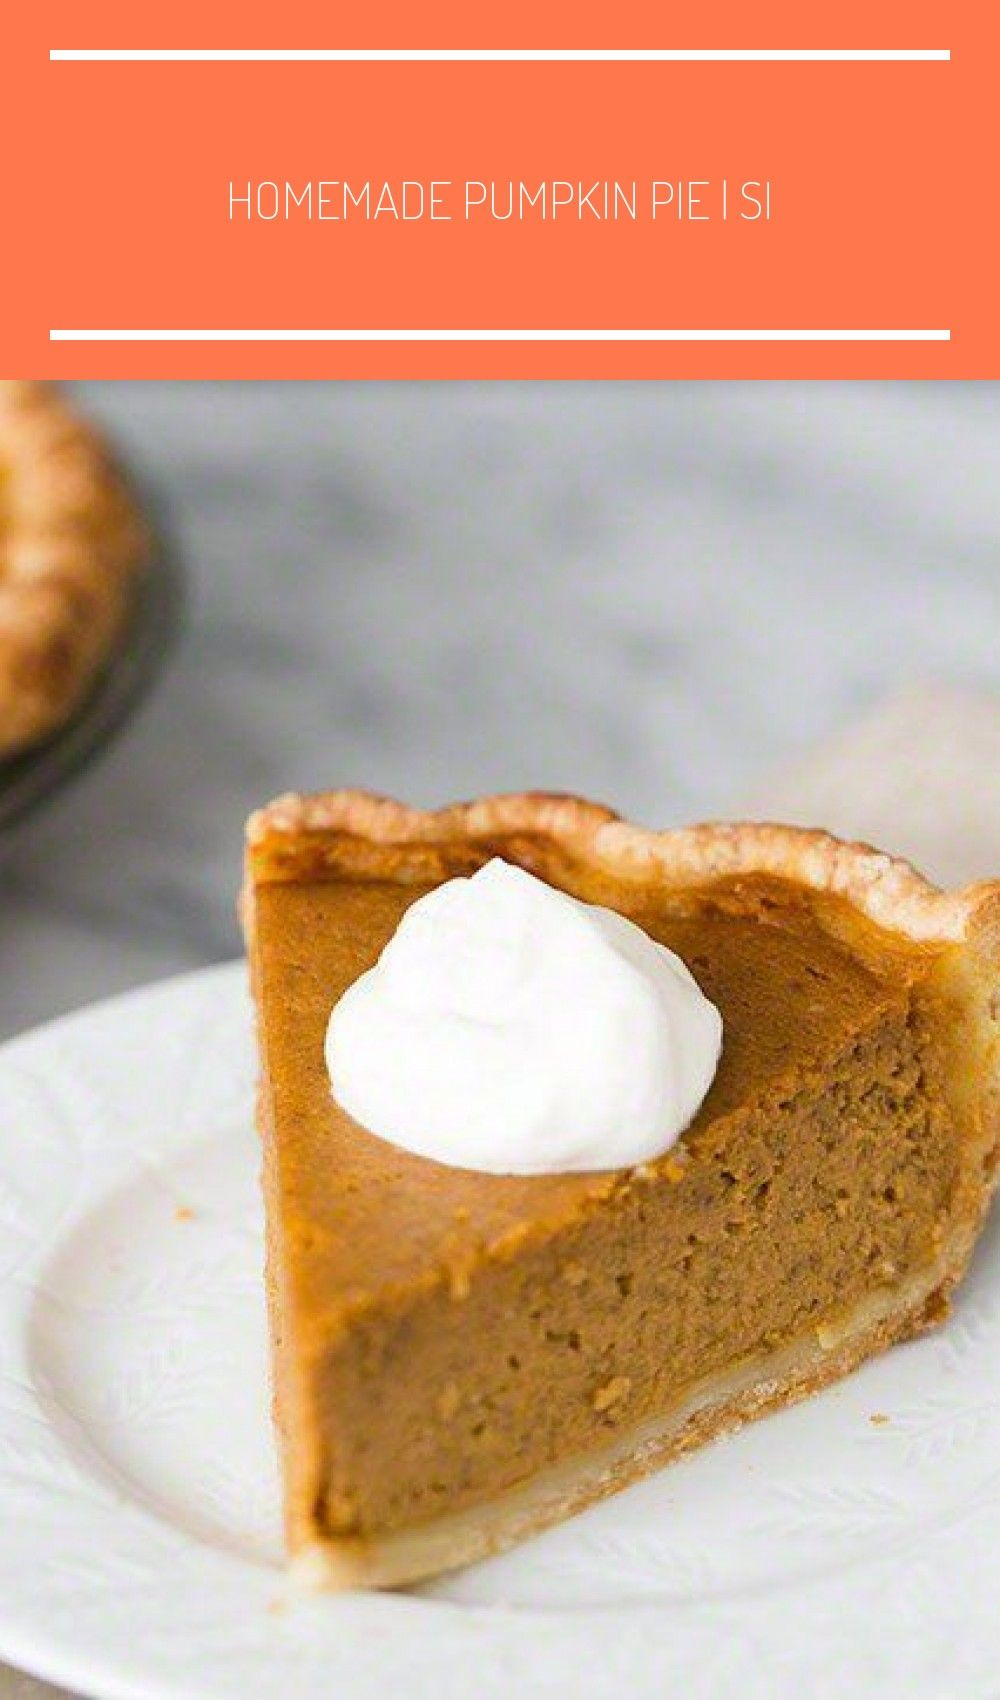 Homemade Pumpkin Pie Simplyrecipes Com Pumpkinpureerecipes Old Fashioned Pumpkin Pie Easy And Delicious Traditional Pumpkin Pie Recipe With Fresh Or Canned In 2020